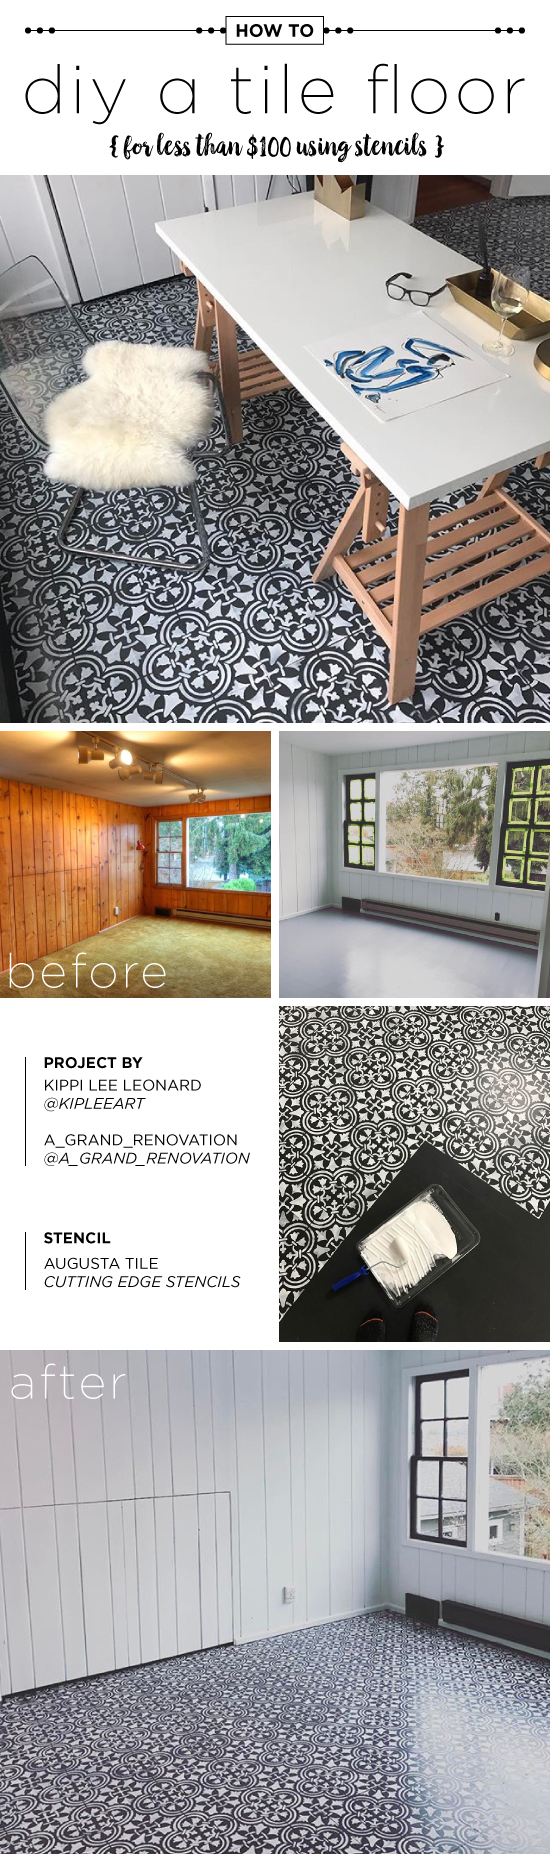 Cutting Edge Stencils shares how to make over an old floor on a budget using the Augusta Tile Stencil. http://www.cuttingedgestencils.com/augusta-tile-stencil-design-patchwork-tiles-stencils.html